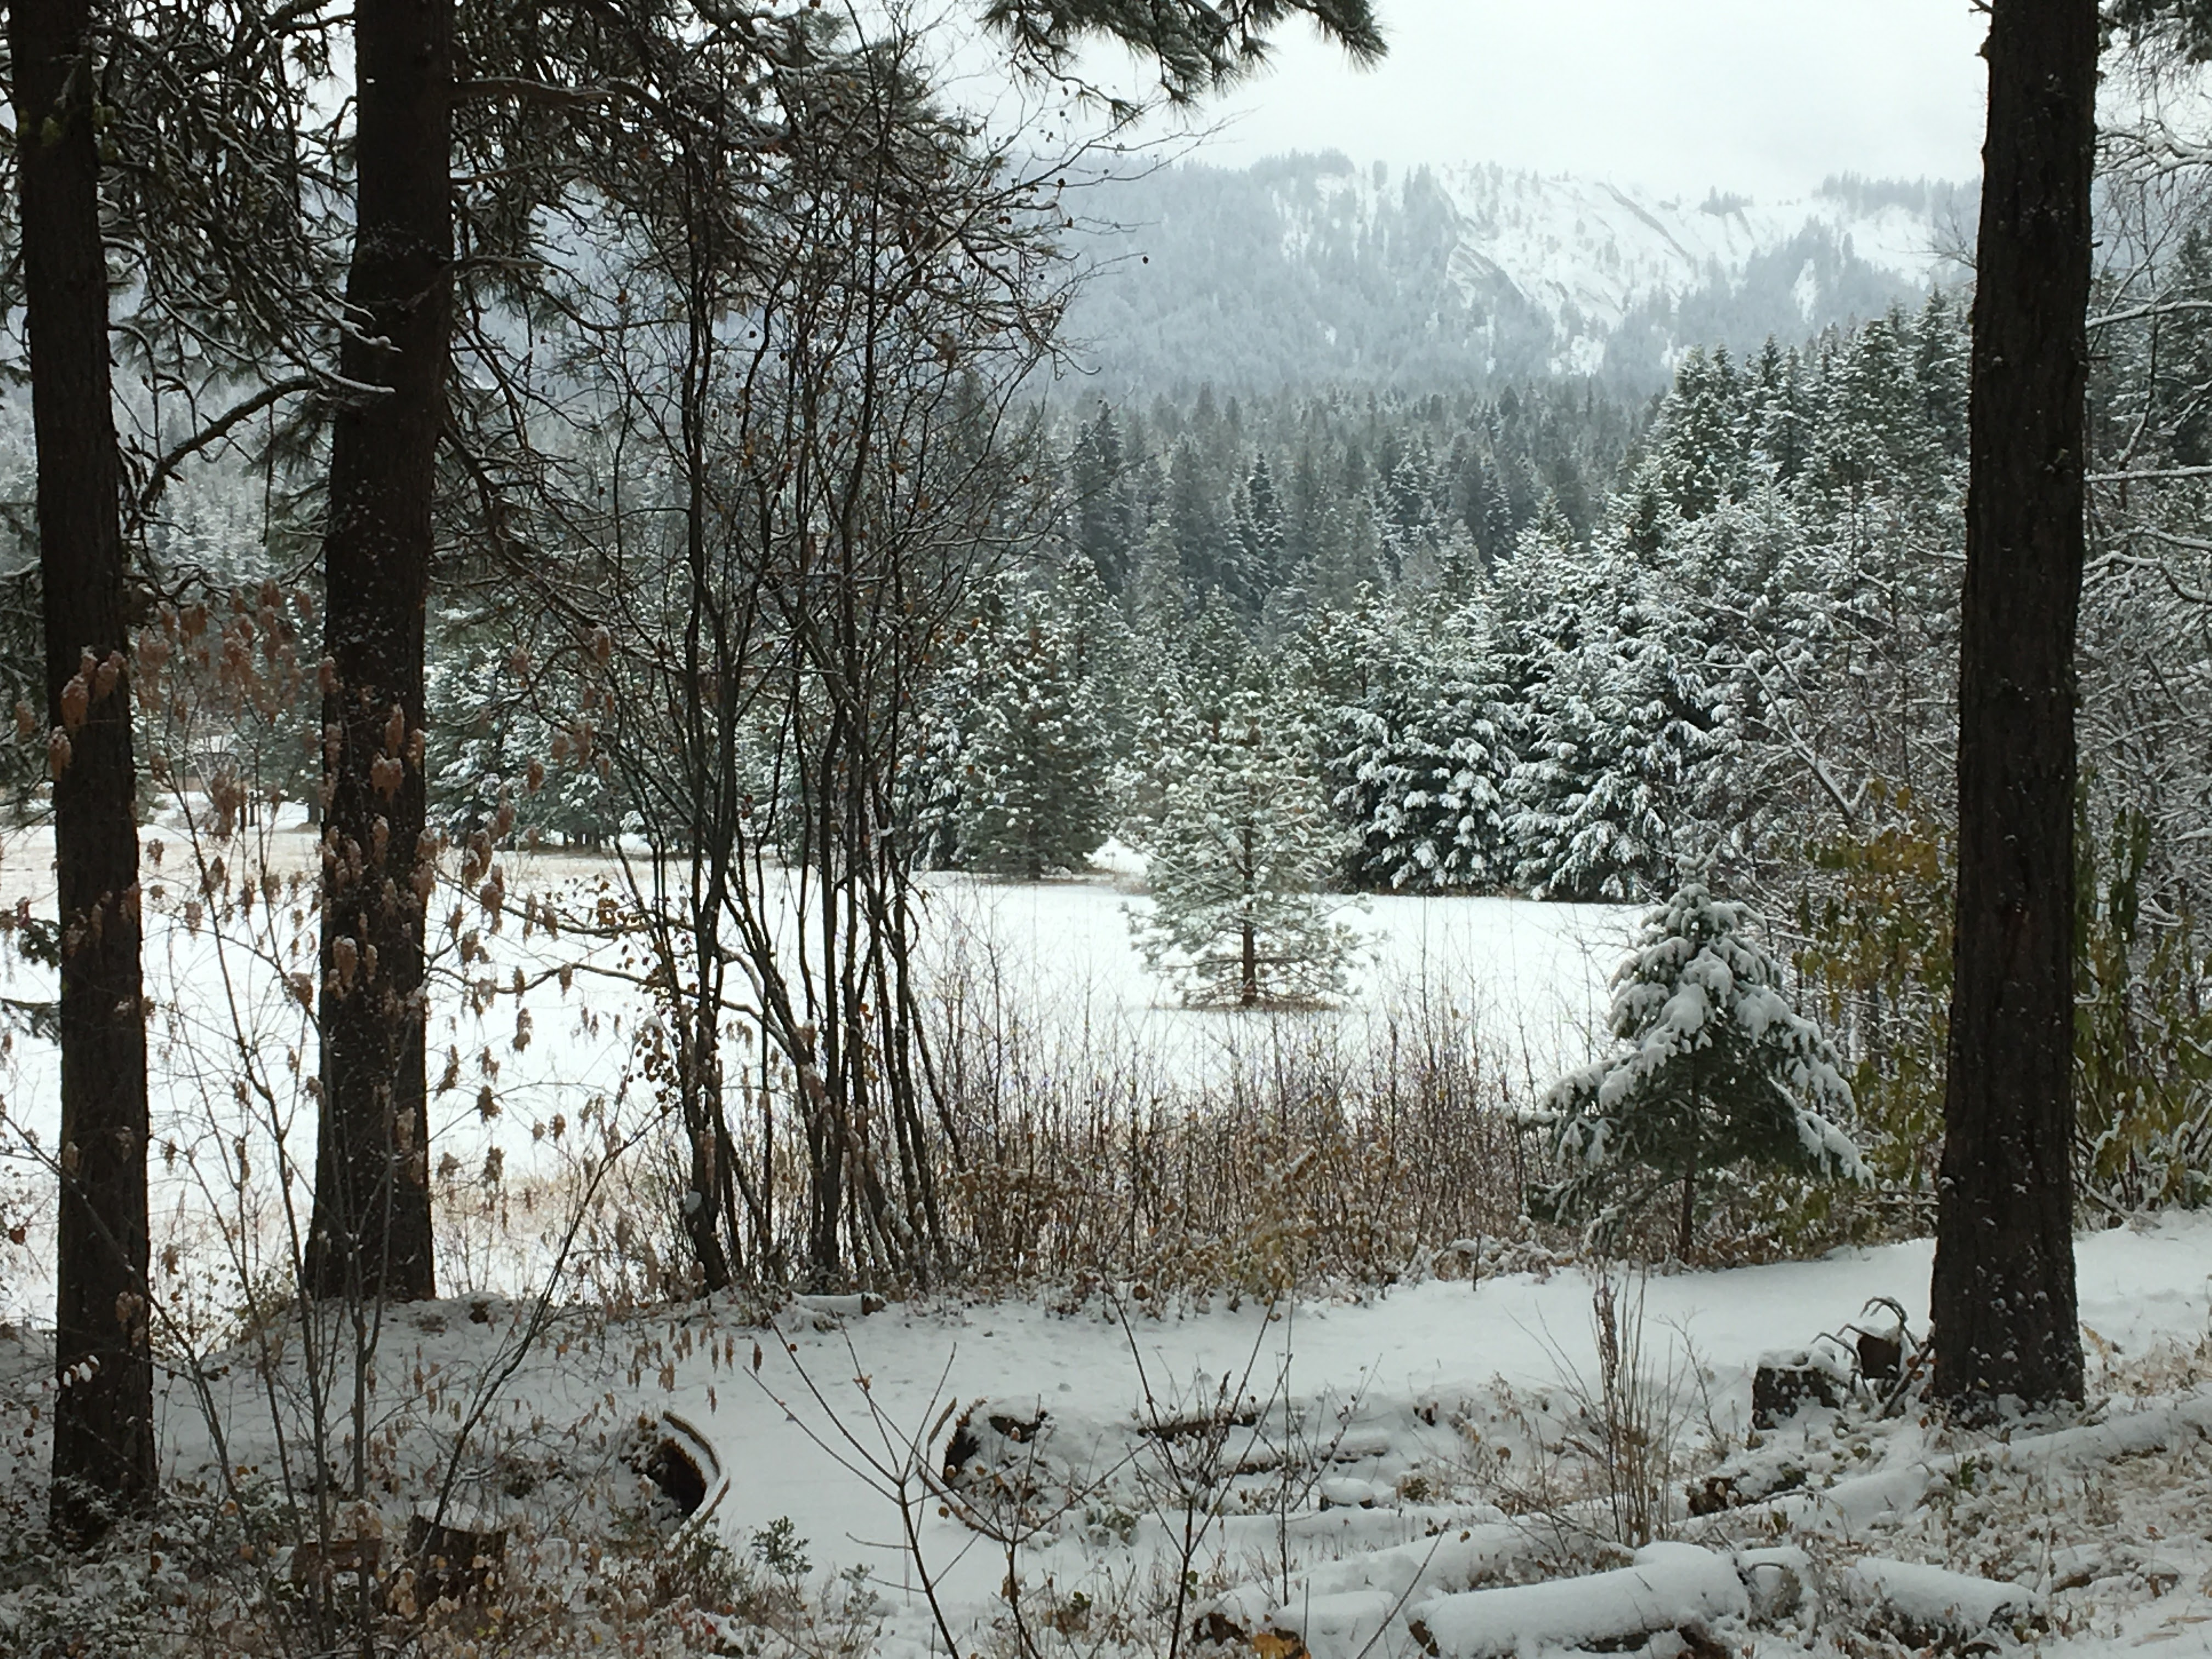 Snow came early this year to the mountains around Plain